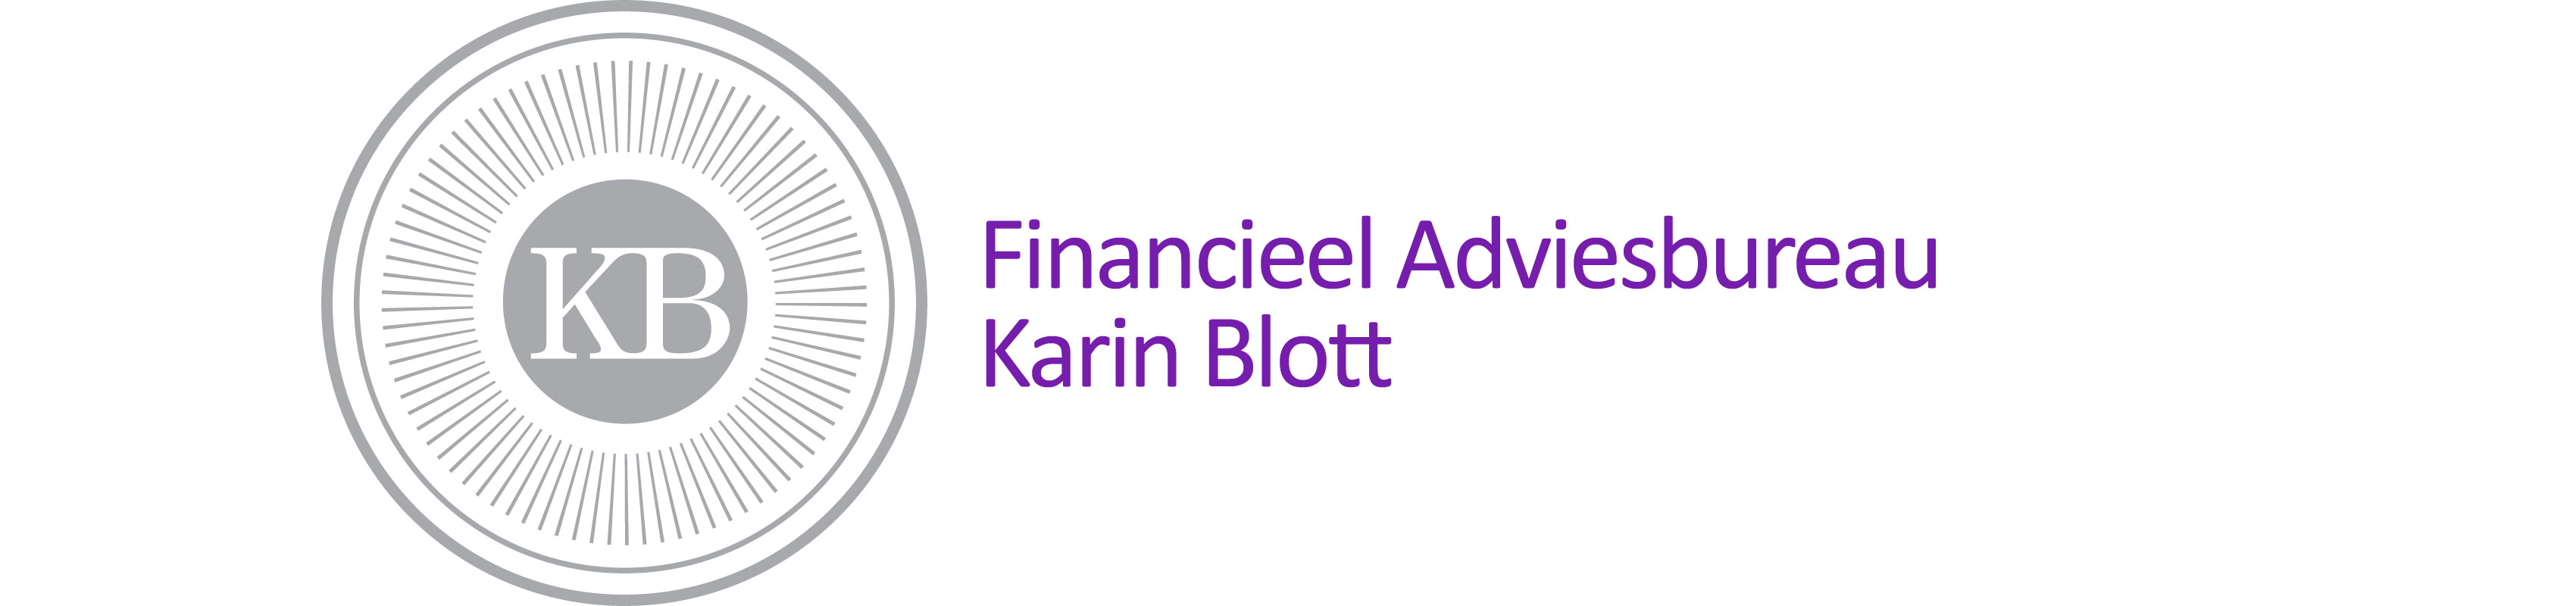 Financial Consultancy Karin Blott